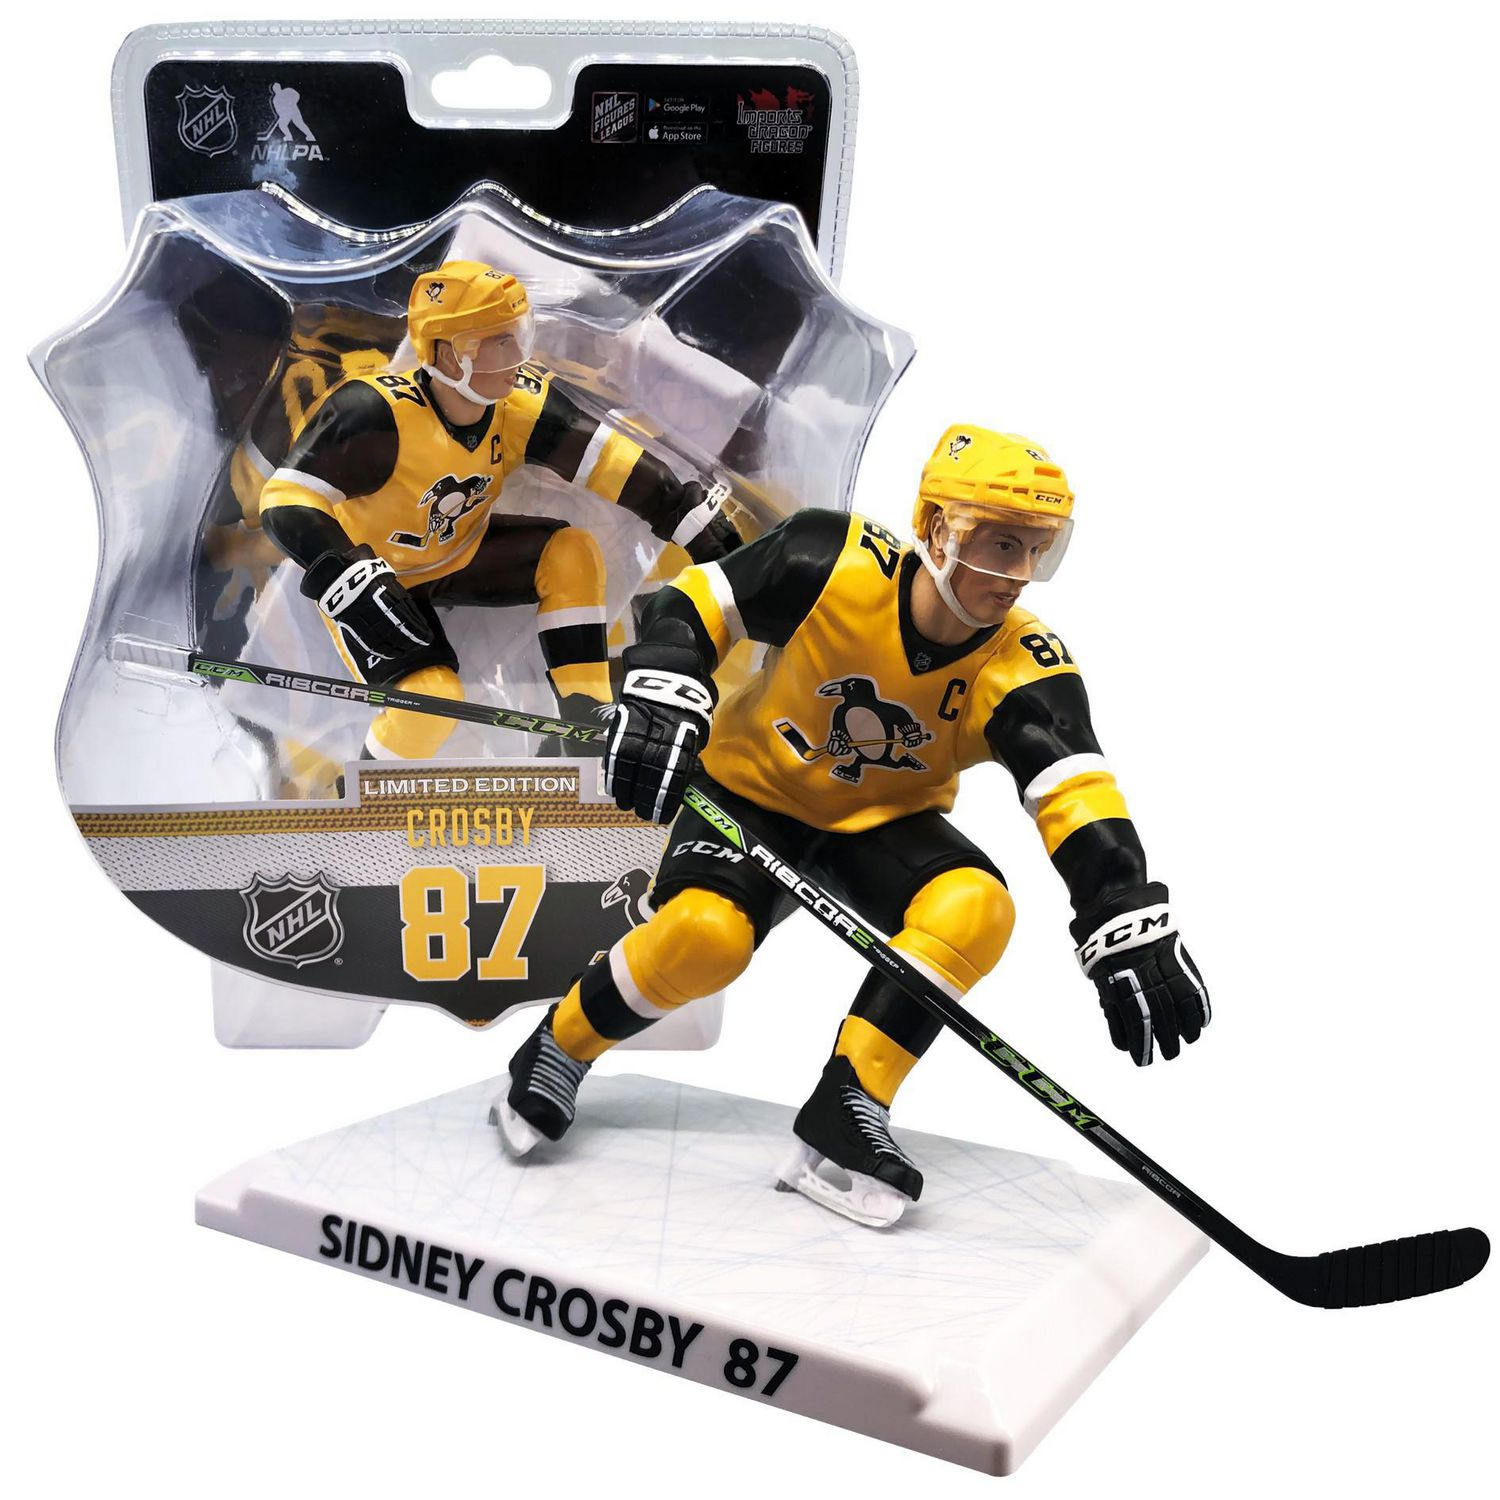 Pittsburgh Penguins 87 Sidney Crosby 6 Limited Edition Nhl Figures Sports Hockey